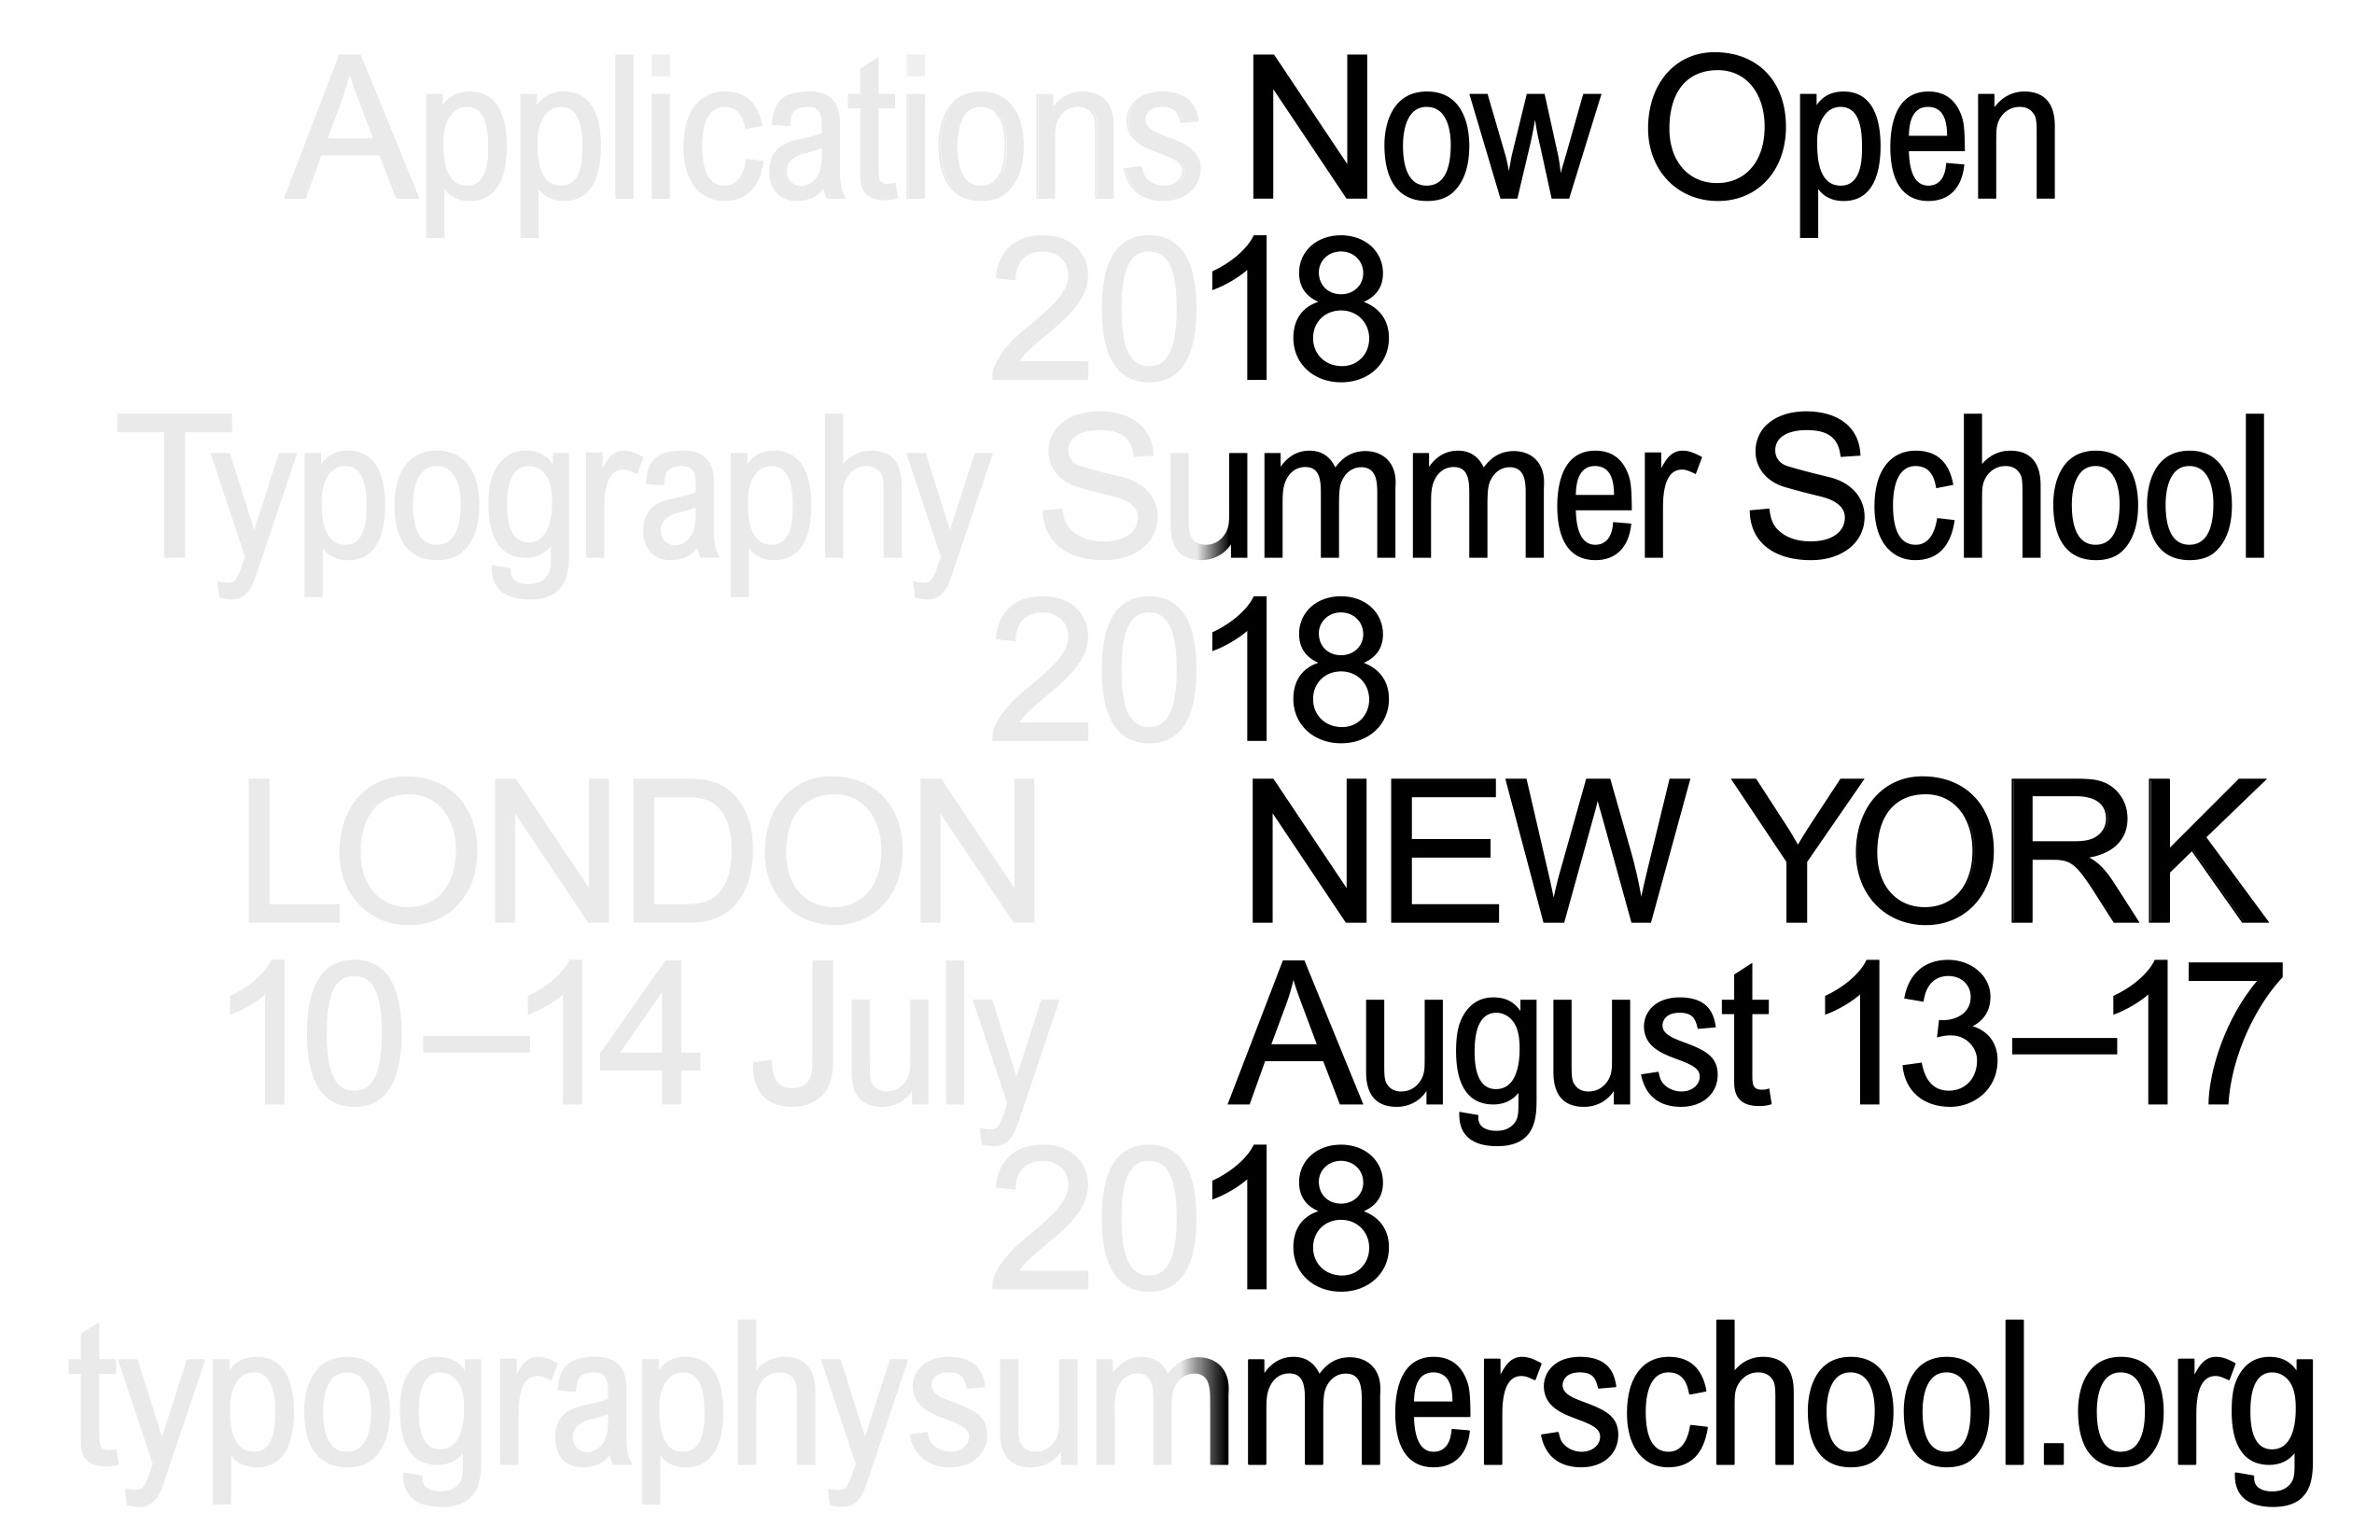 Typography Summer School NYC & London: Applications Now Open